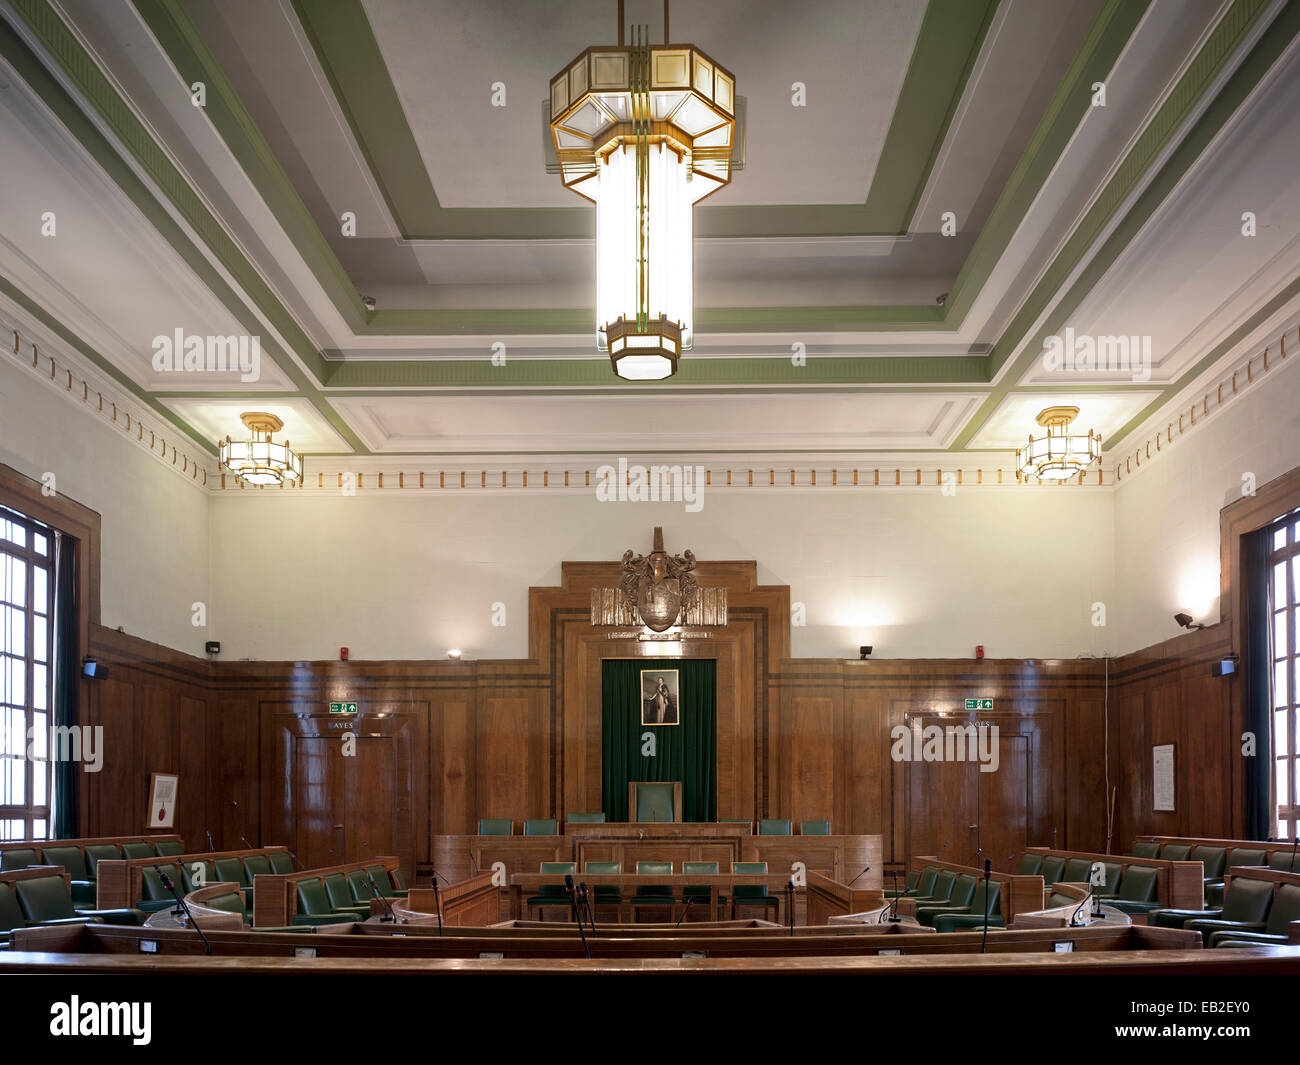 Hackney Town Hall, London, United Kingdom. Architect: Hawkins Brown Architects LLP, 2012. Council Chamber Room with Stock Photo